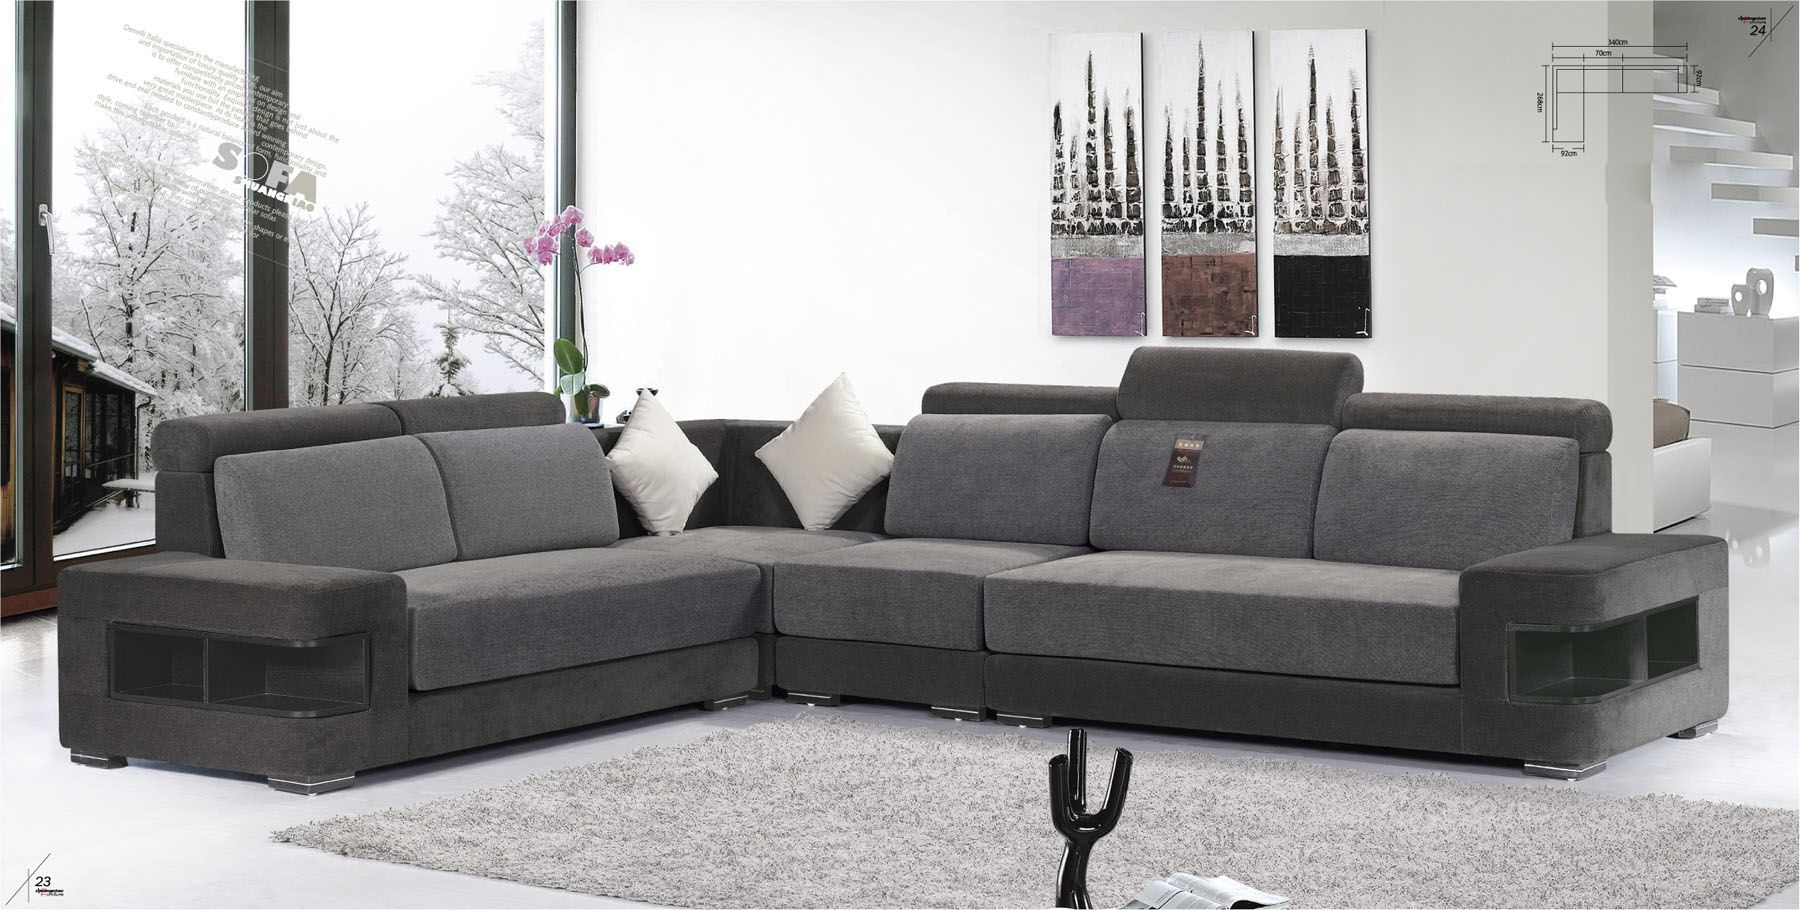 All Modern L Shaped Couch In 2020 Sofa Design Living Room Sofa Sofa Set